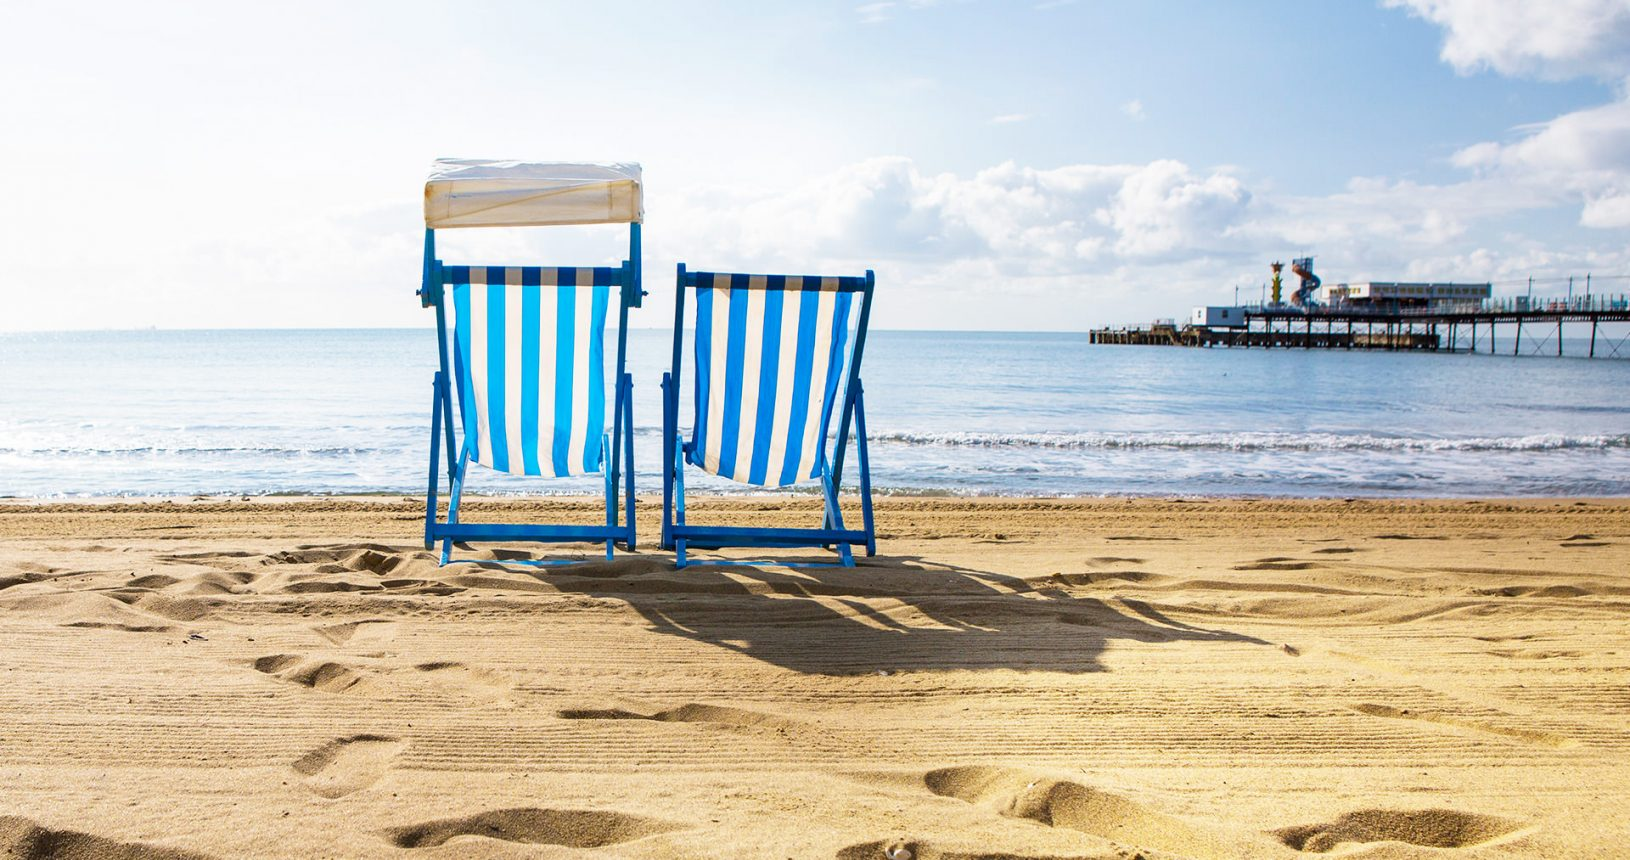 Deckchairs on Isle of Wight